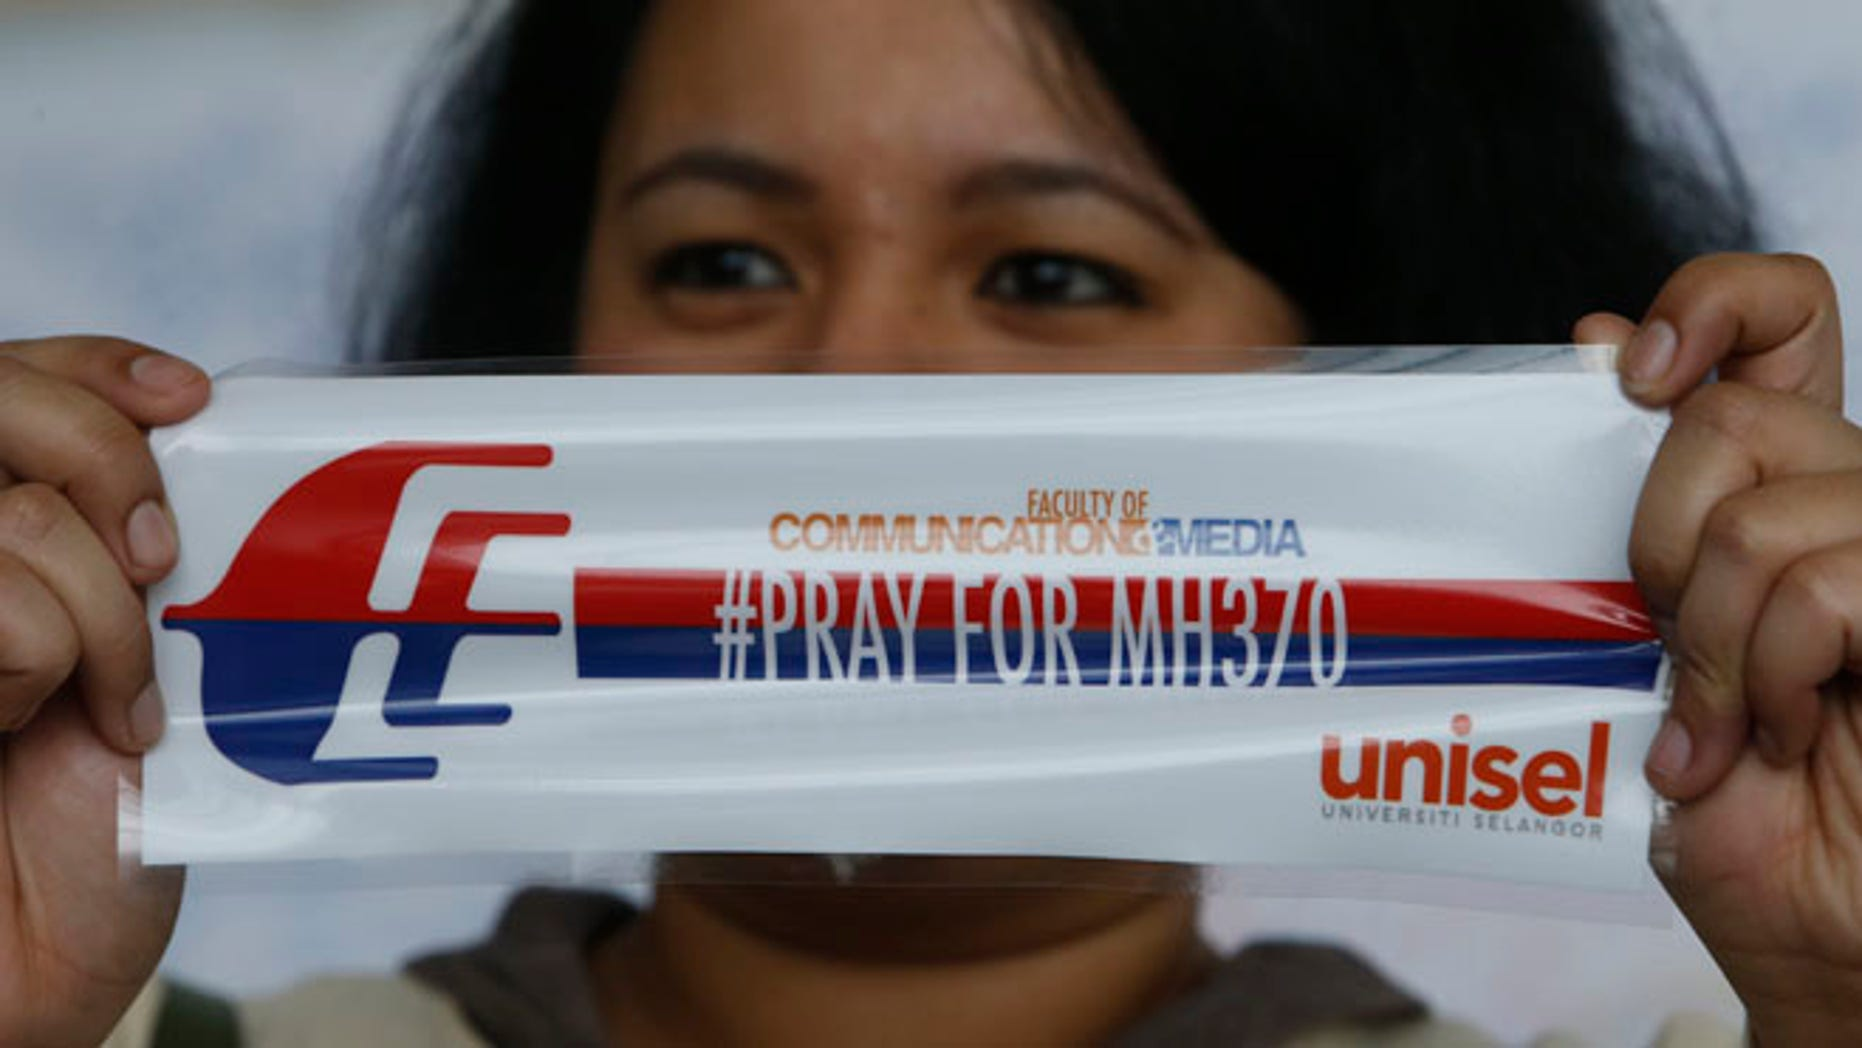 March 16, 2014.: A woman with a sticker on  the passengers of the missing Malaysia flight, at Kuala Lumpur International Airport, Malaysia.